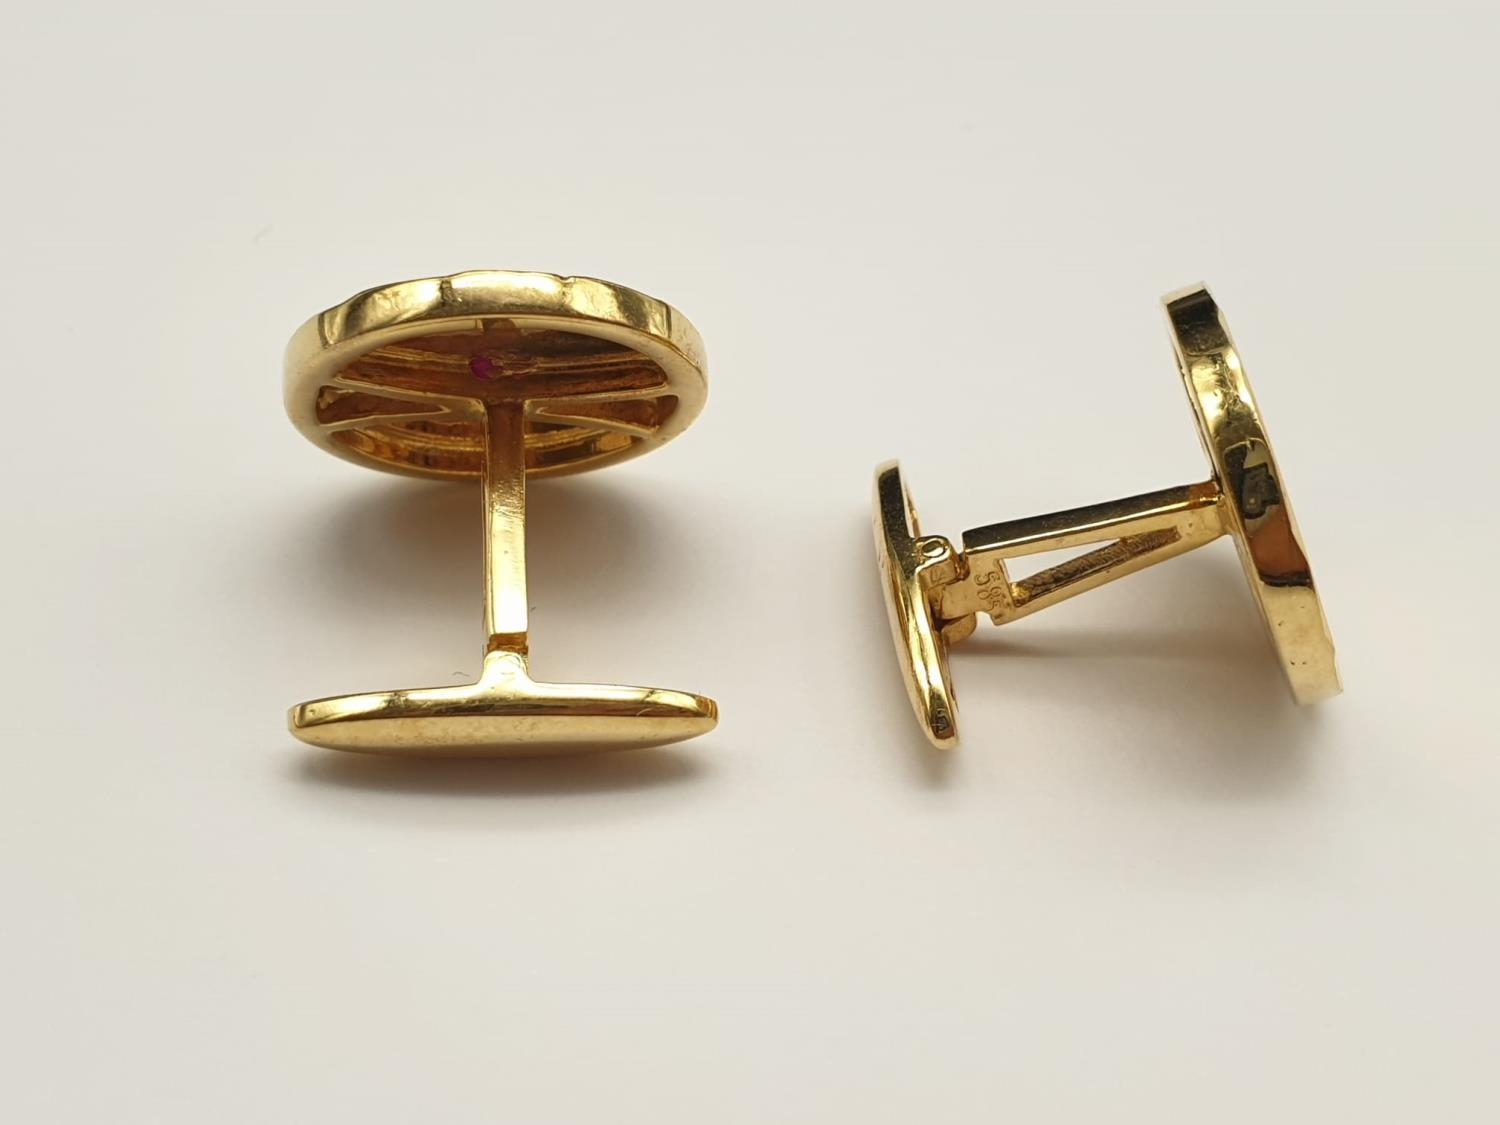 A Pair of 14k Yellow Gold and Ruby Cufflinks. 11.83g - Image 3 of 5